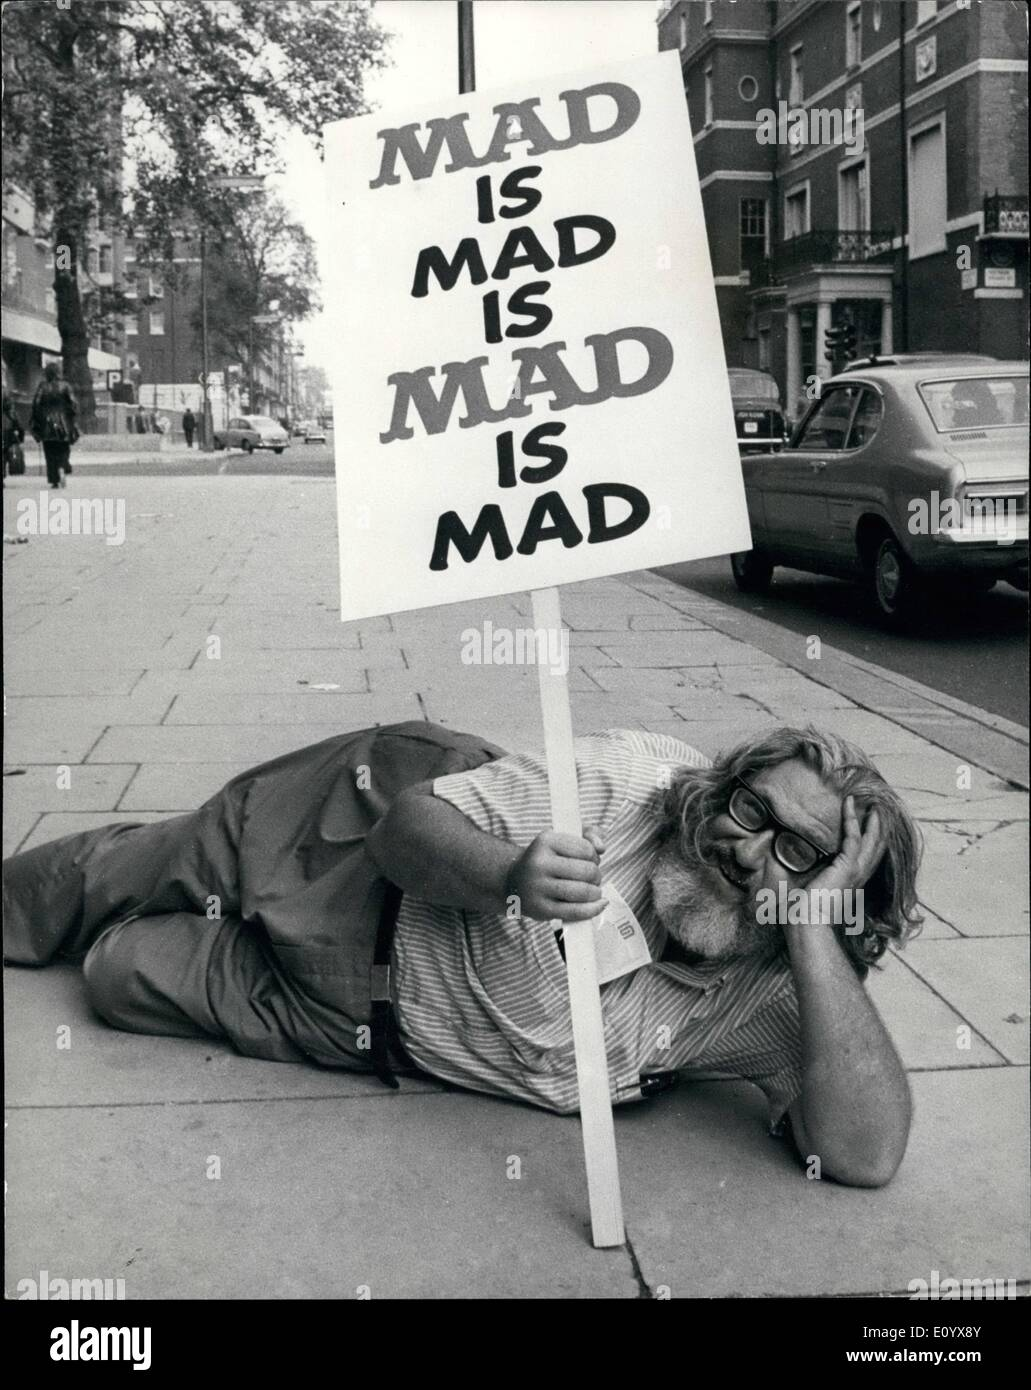 Sep. 09, 1971 - Millionaire Publisher of ''mad'' Magazine in London.: William M. Gaines, has arrived in London from New York with twenty male members of his ''Mad'' family. William Gaines is certainly an unusual character,.A self confessed eccentric and a considerable gourmet, he is the millionaire publisher of ''Mad'' magazine, the satirical American ''in'' teenage comic, which he launched in 1952 and which now sells over 1.9 million copies in he U.S.A. and is also translated into nine foreign languages.Whatever eles he is, Mr. Gaines is an expert in employer -employee relations - Stock Image